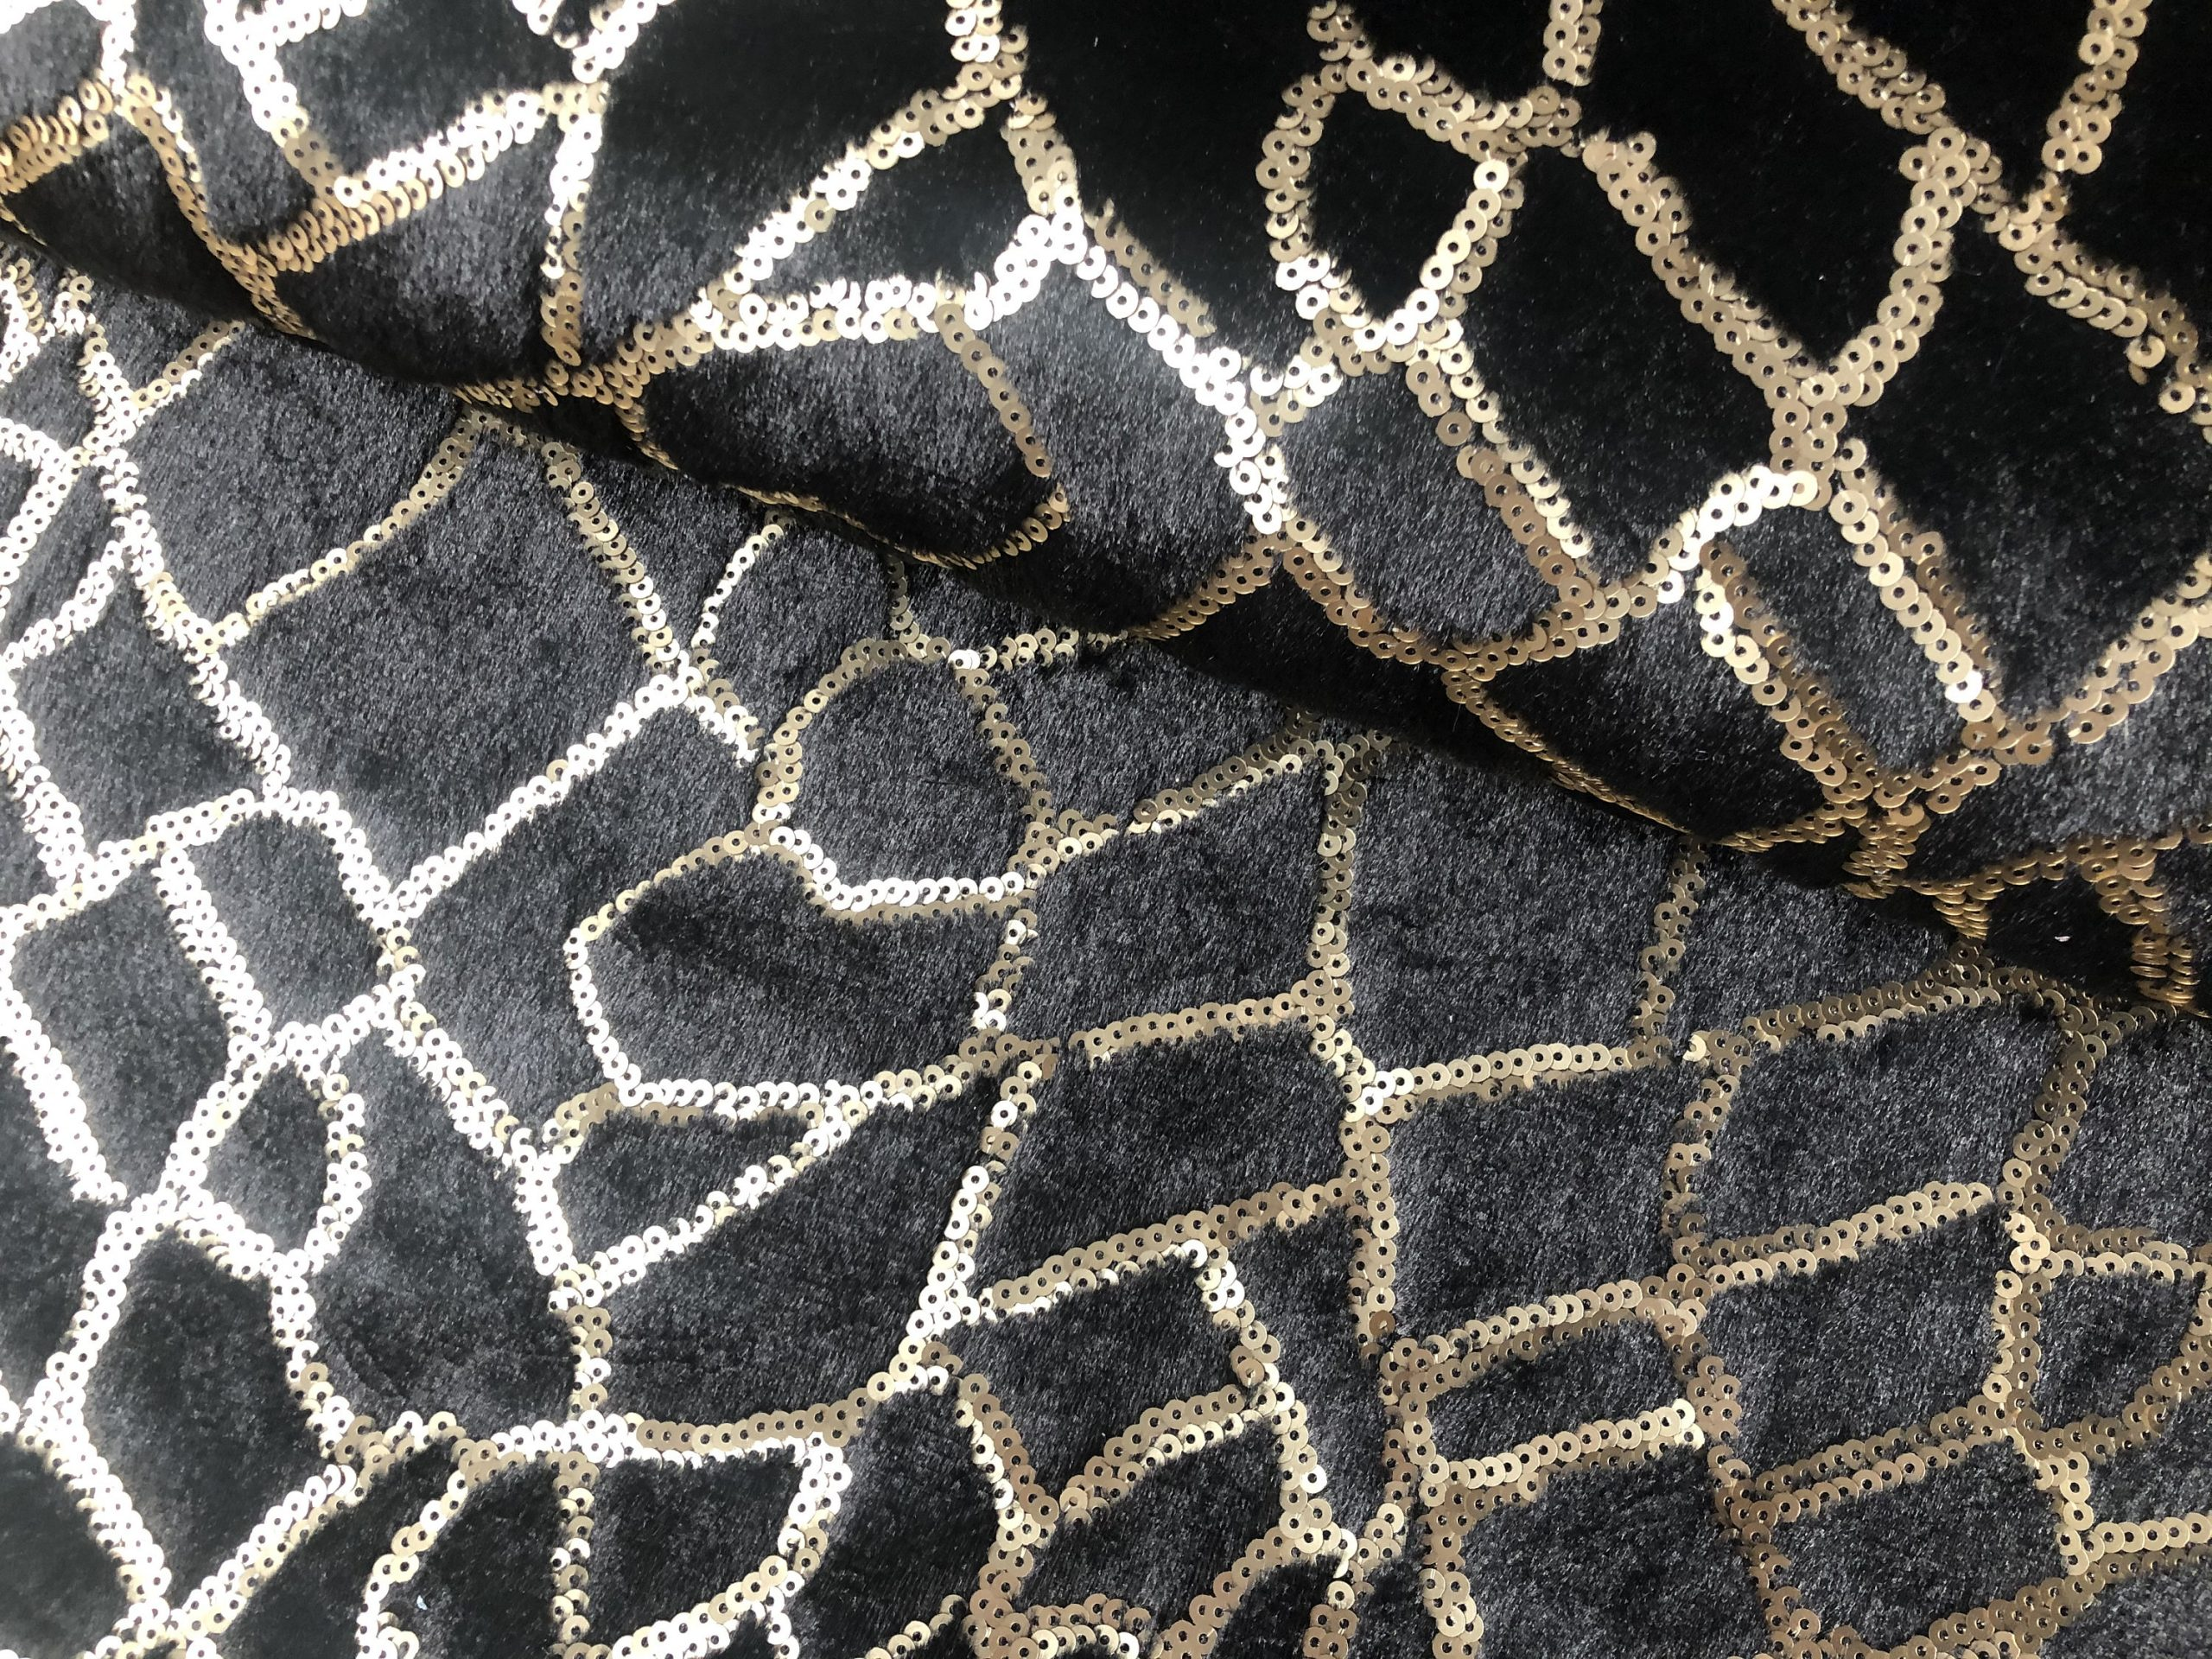 "Animal Fur Spangles Sequin Fabric Soft 2 Way Stretch Material Giraffe Print – 53""/135cm Wide BLACK & GOLD"